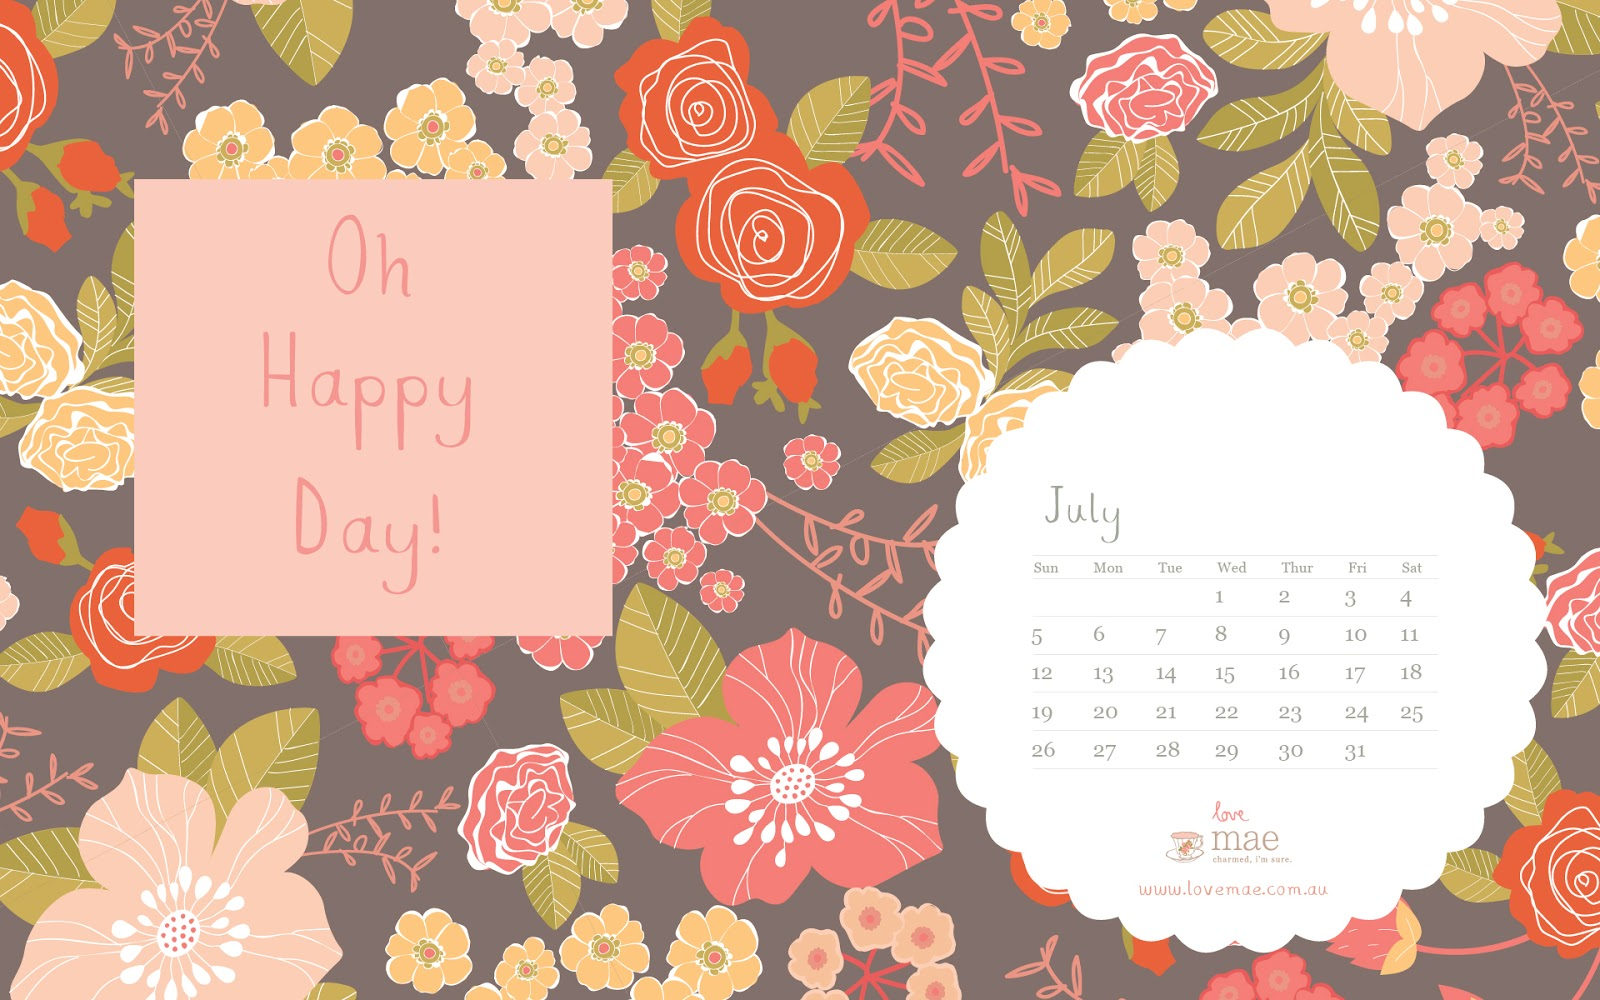 Calendar Wallpaper Love Mae : New desktop calendar for july love mae